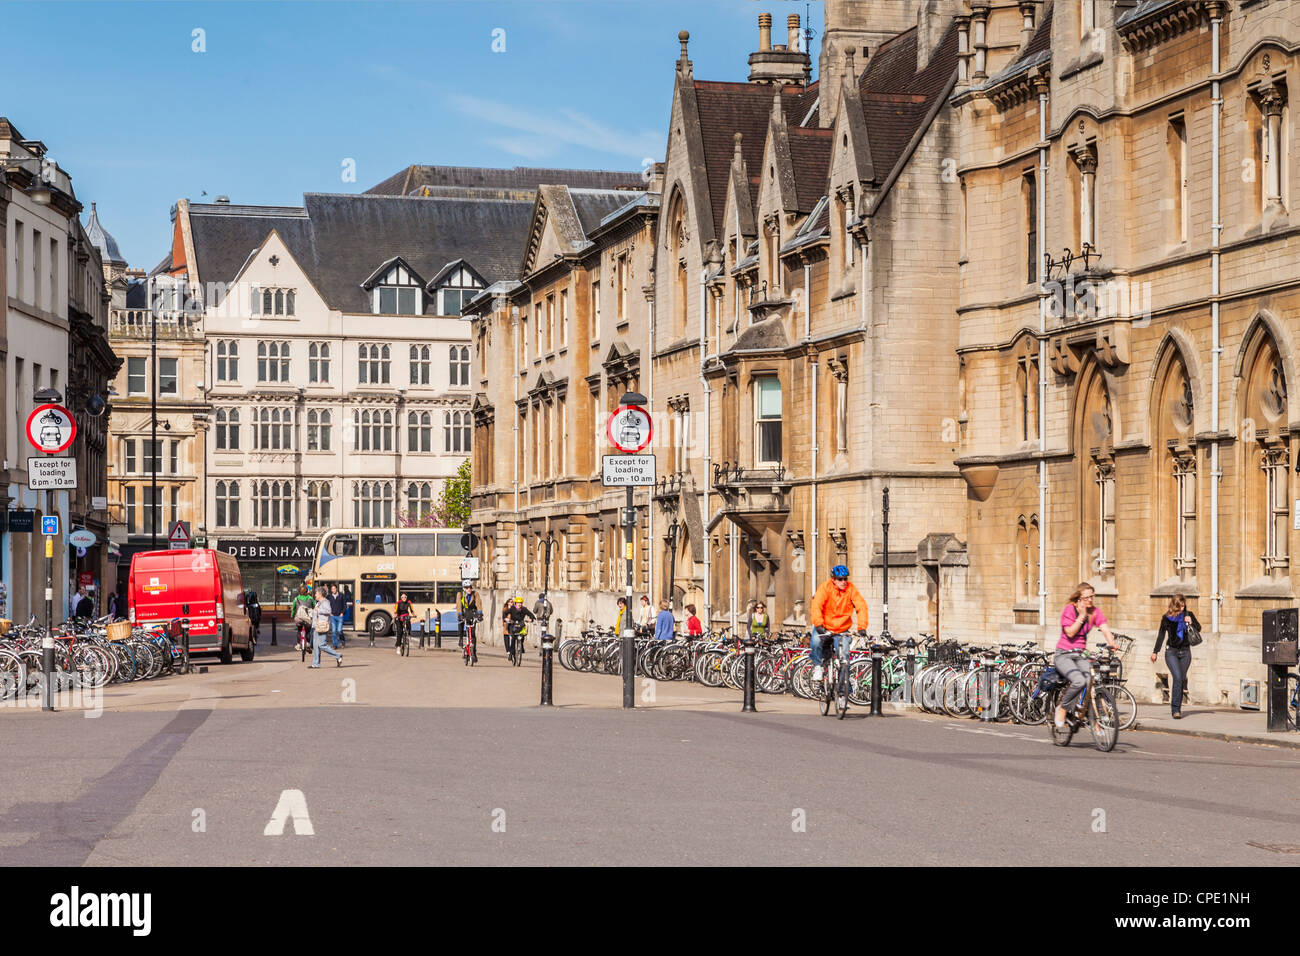 Broad Street, Oxford - on the right is Balliol College. - Stock Image